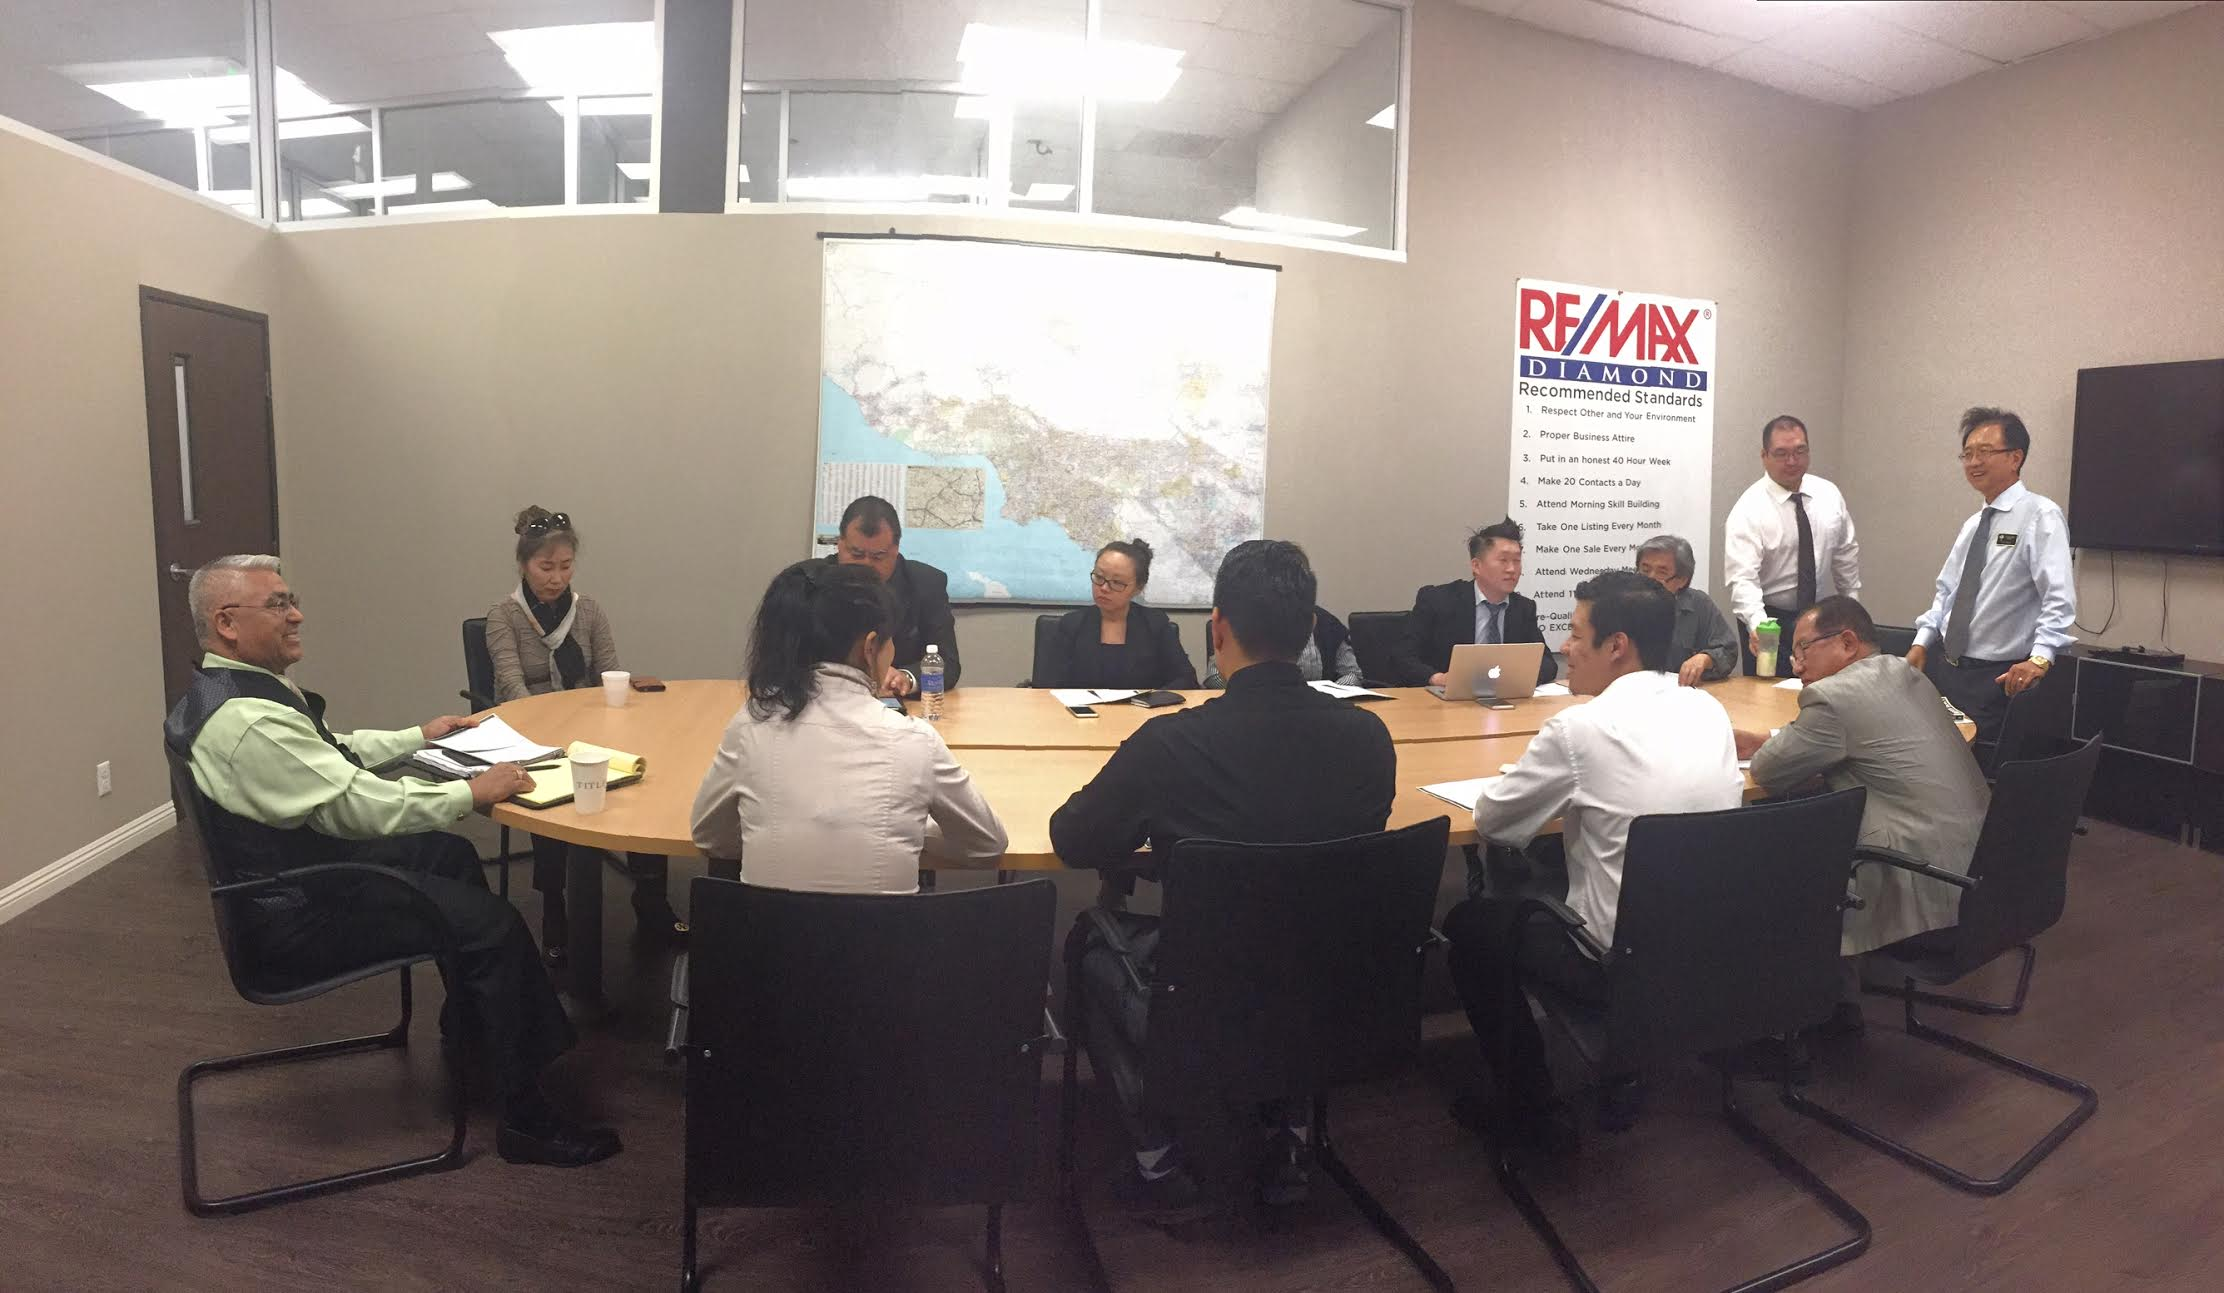 Meeting-at-Remax